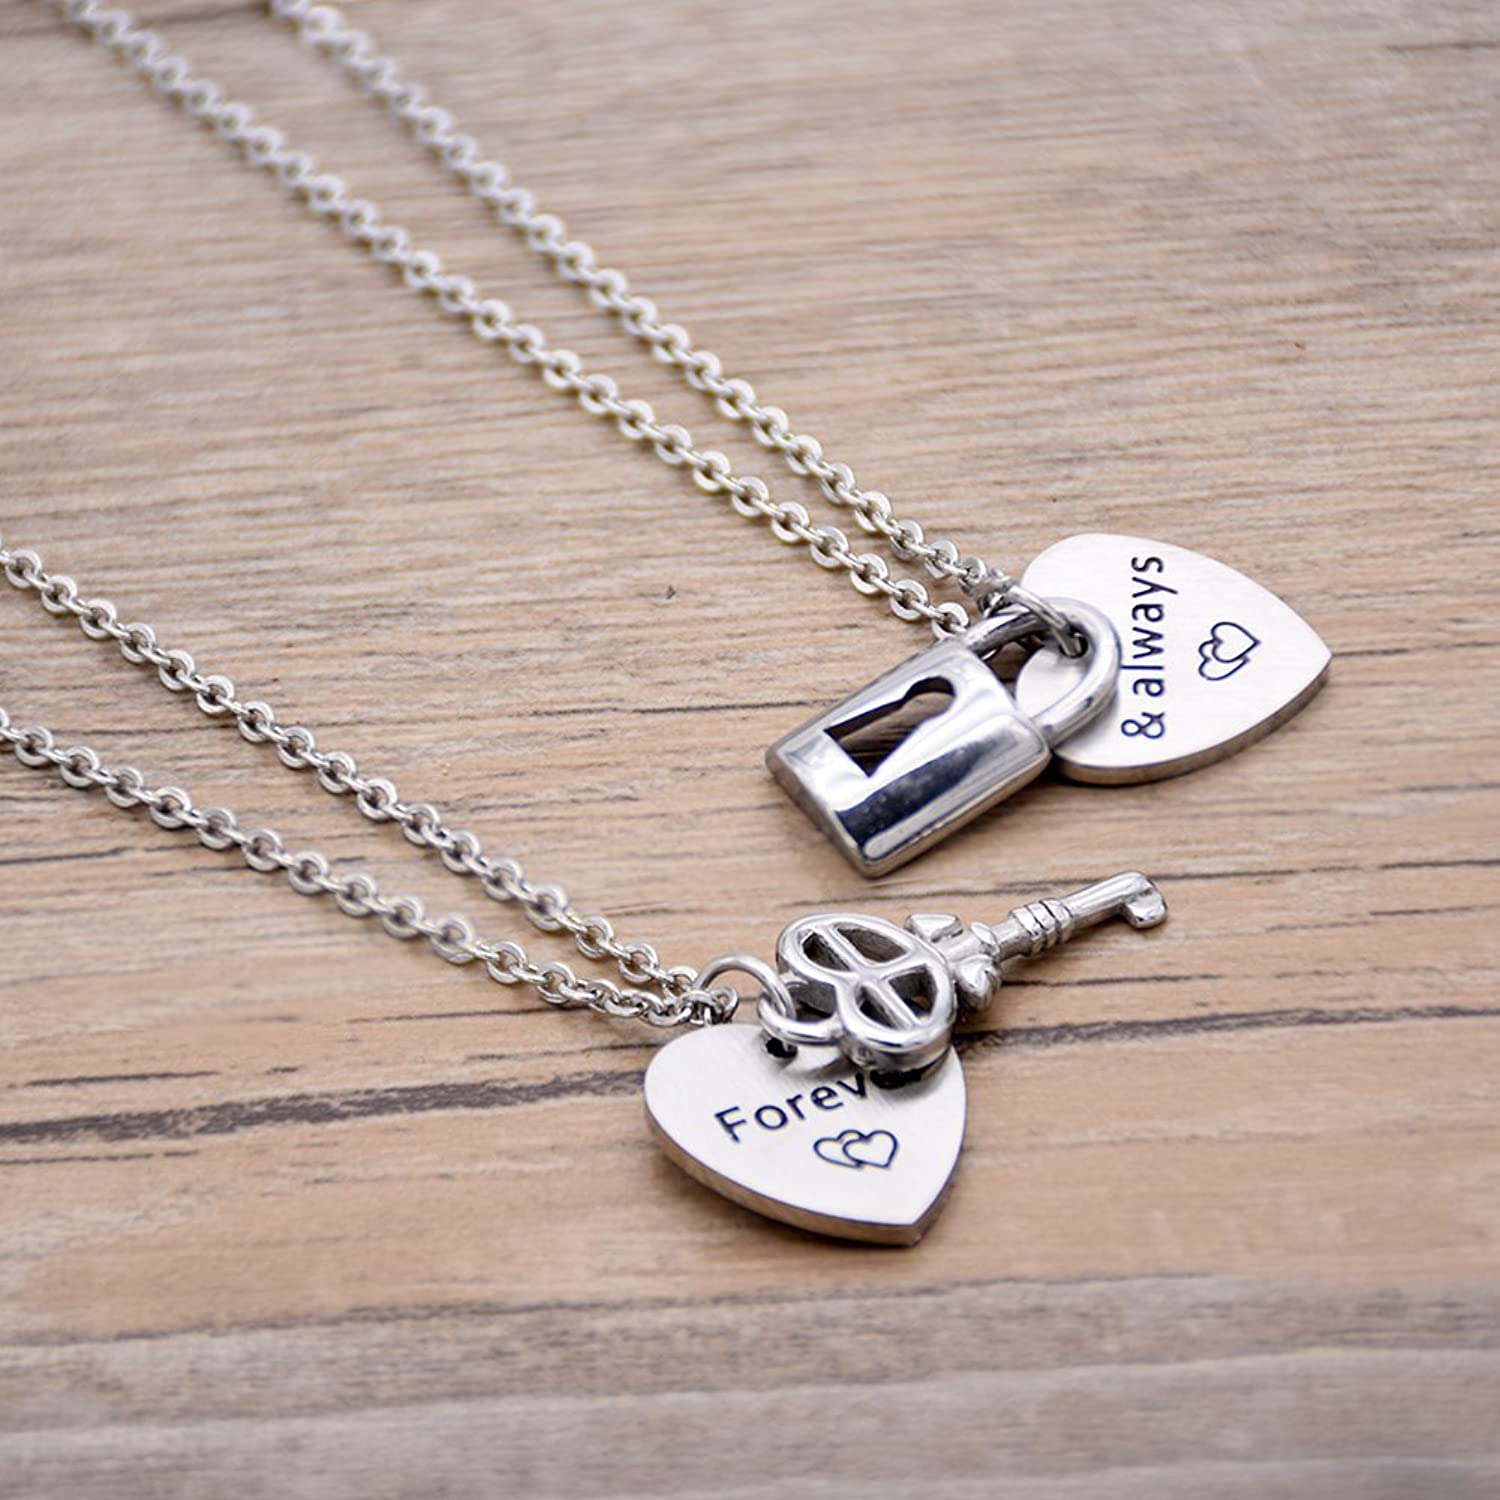 Melix Couples Necklace Set for Boyfriend And Girlfriend with Lock ...